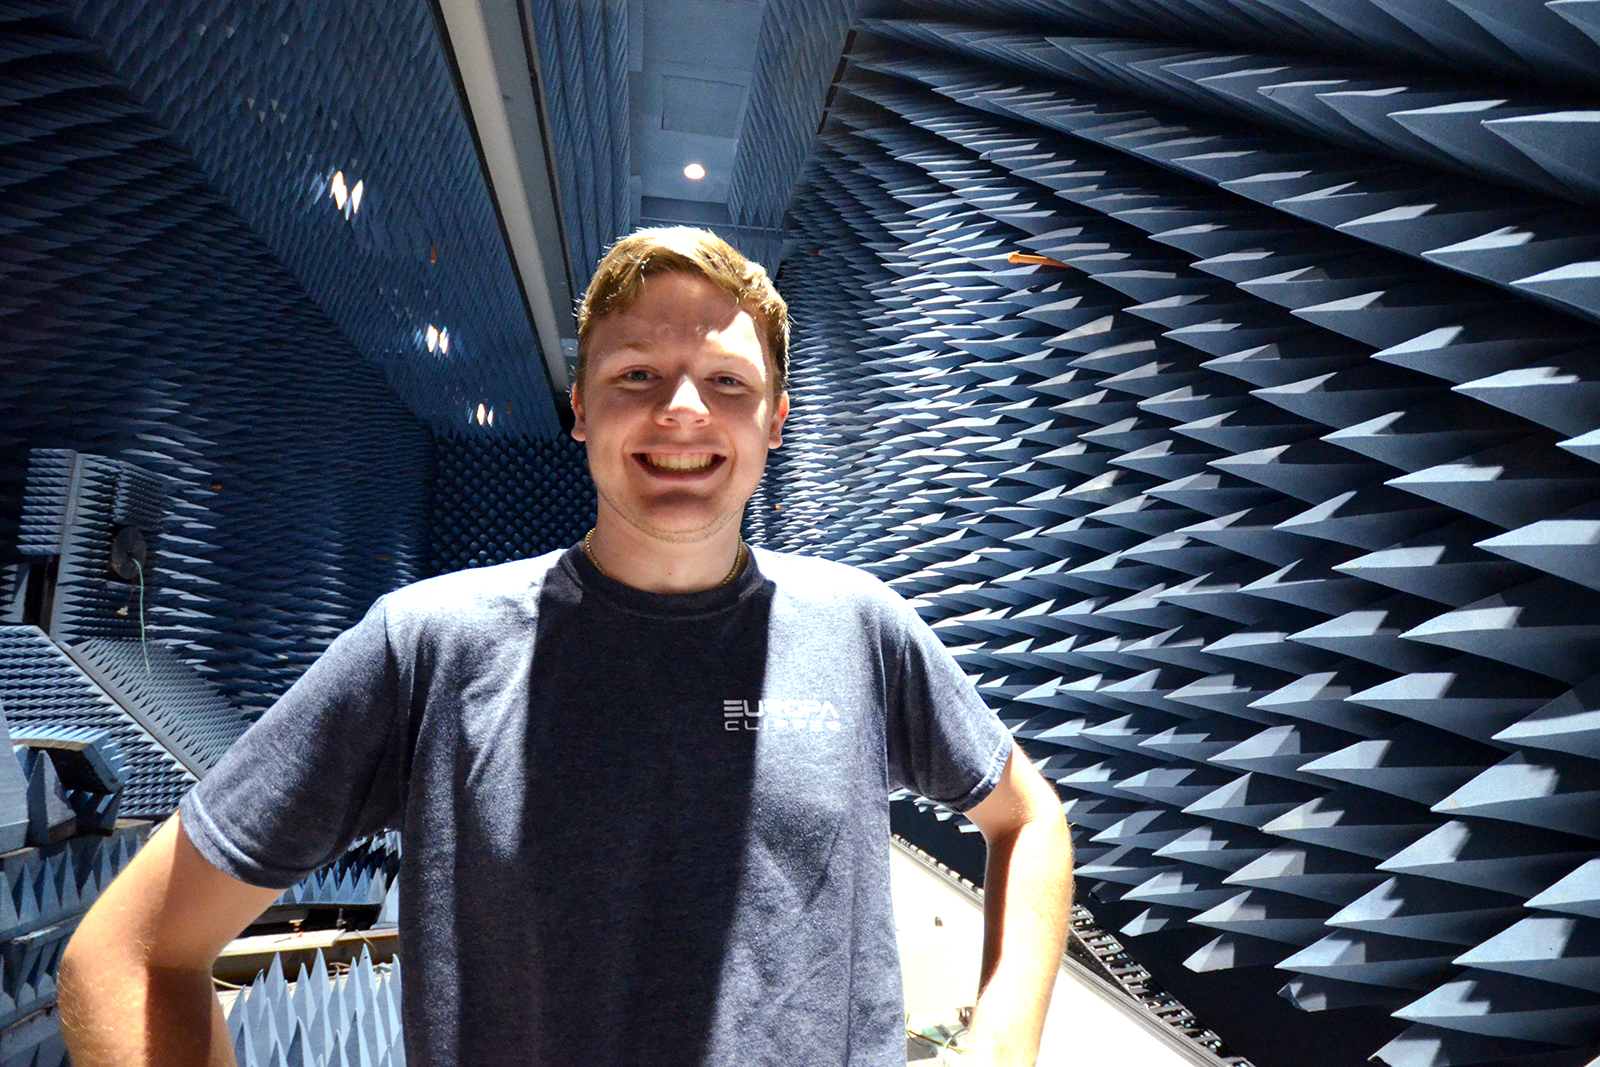 Zachary Luppen stands in an anechoic chamber at JPL